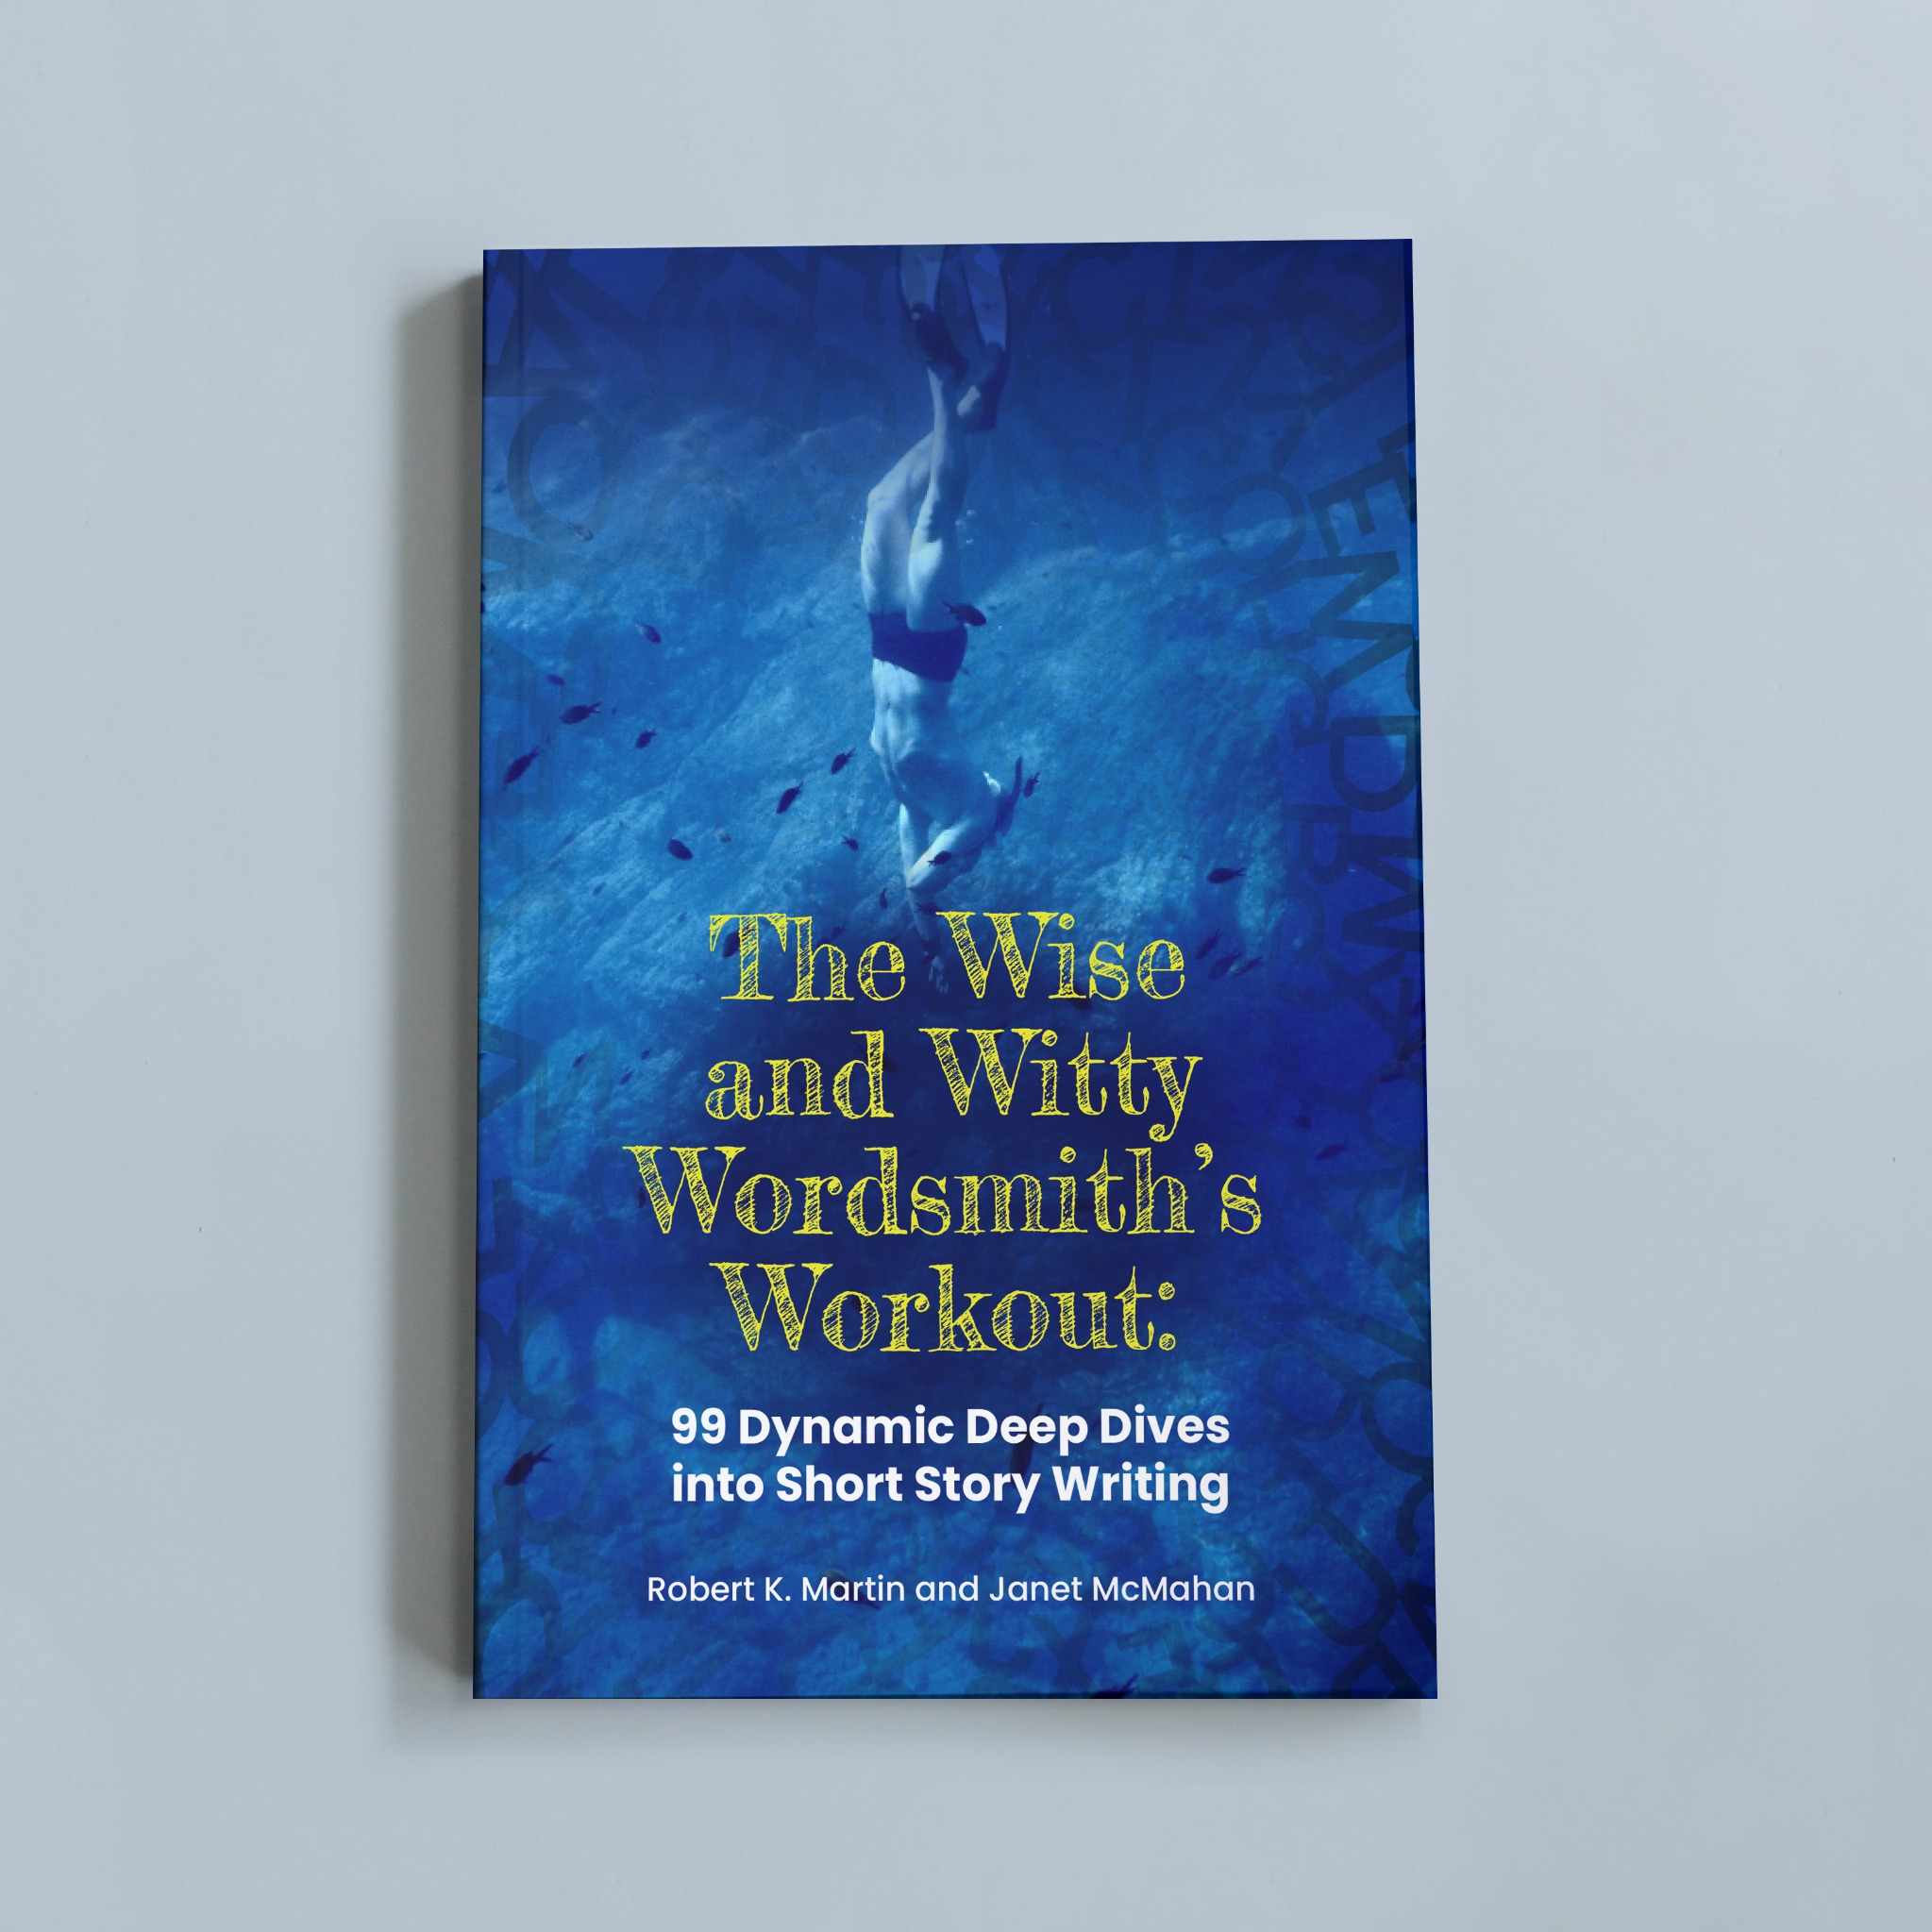 The Wise and Witty Wordsmith's Workout: 99 Dynamic Deep Dives into Short Story Writing (eReader)